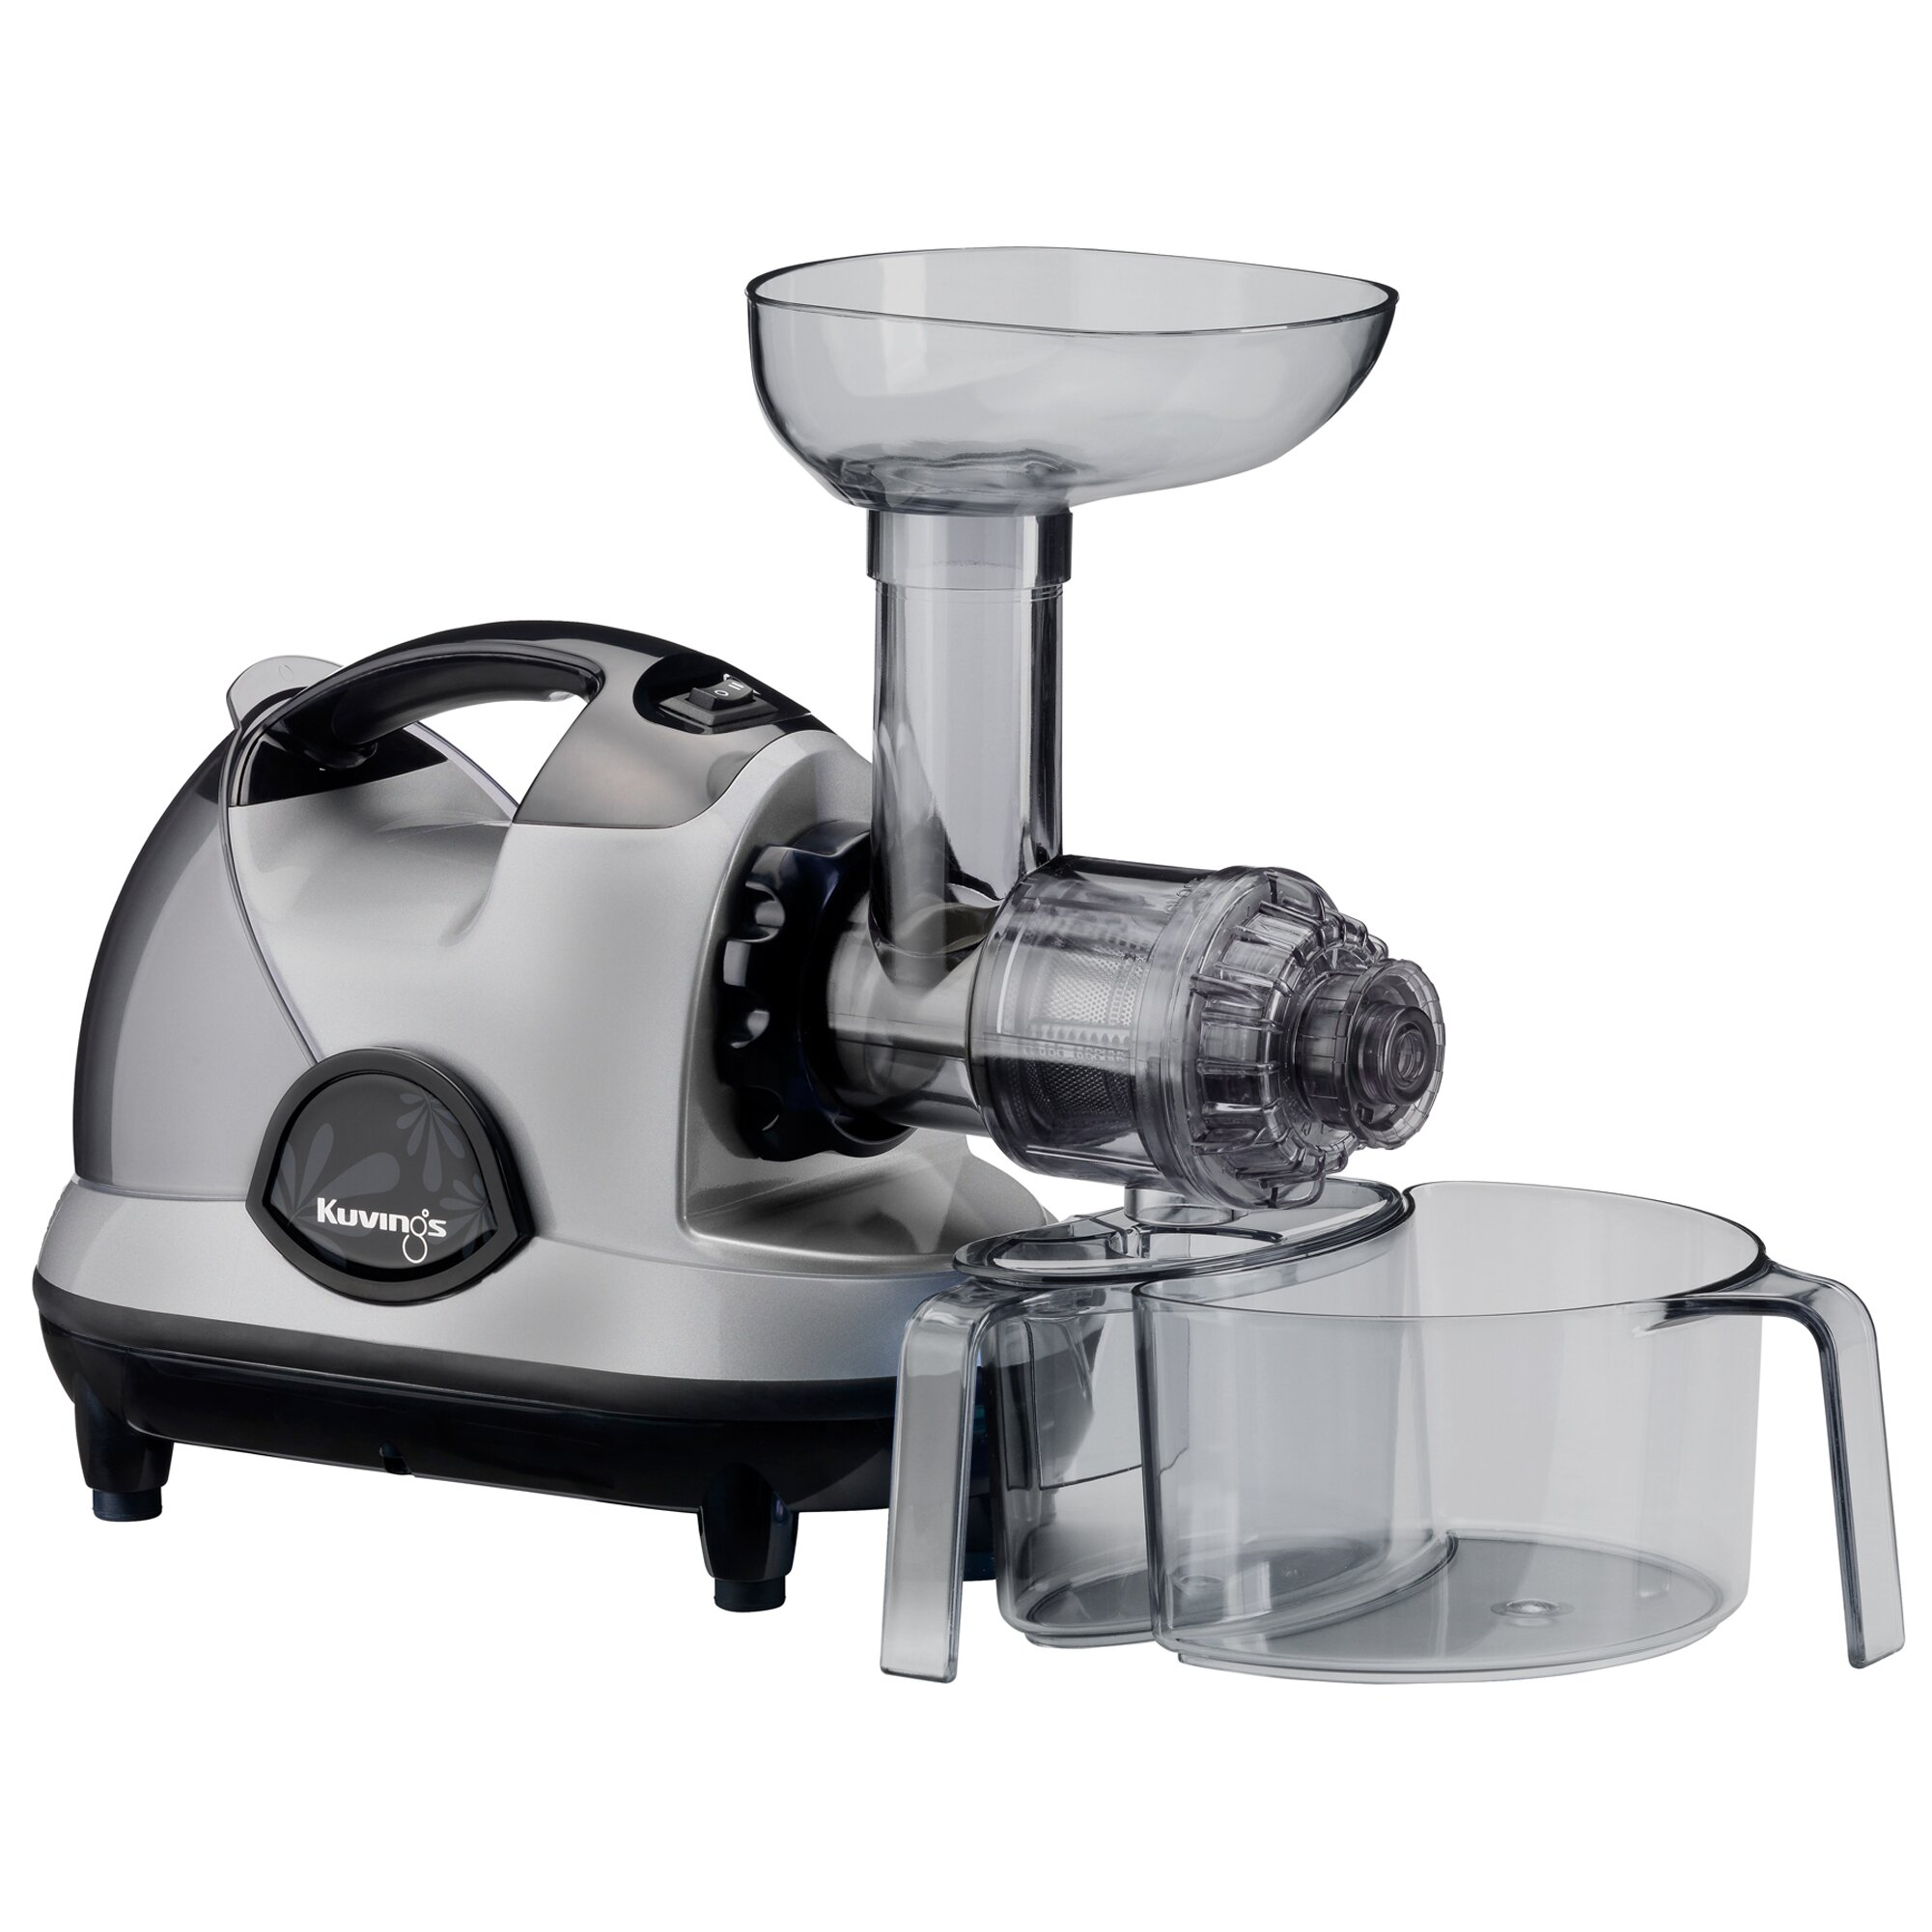 Kuvings Slow Juicer Review : KUvINGS Multi-Purpose Slow Juicer & Reviews Wayfair